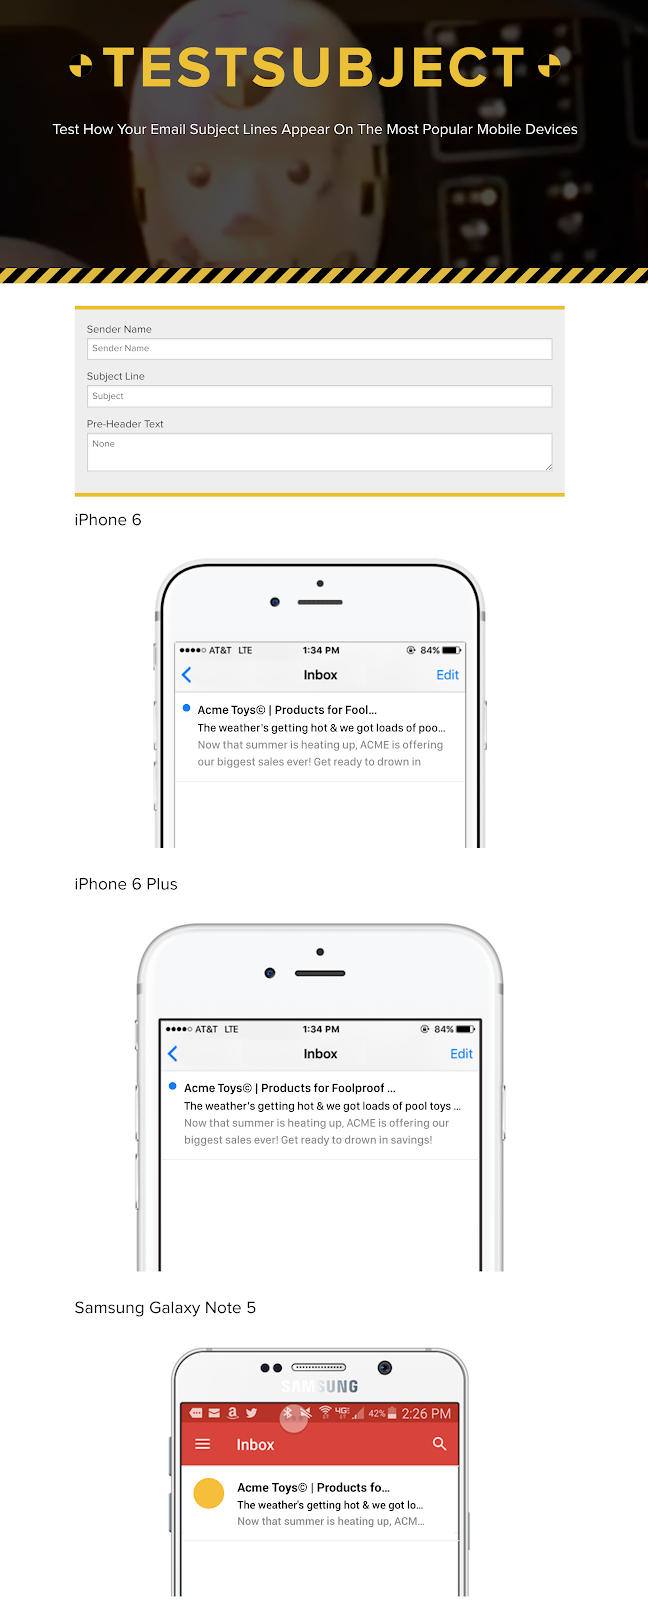 Screenshot showing a tool that shows how email titles look on different devices